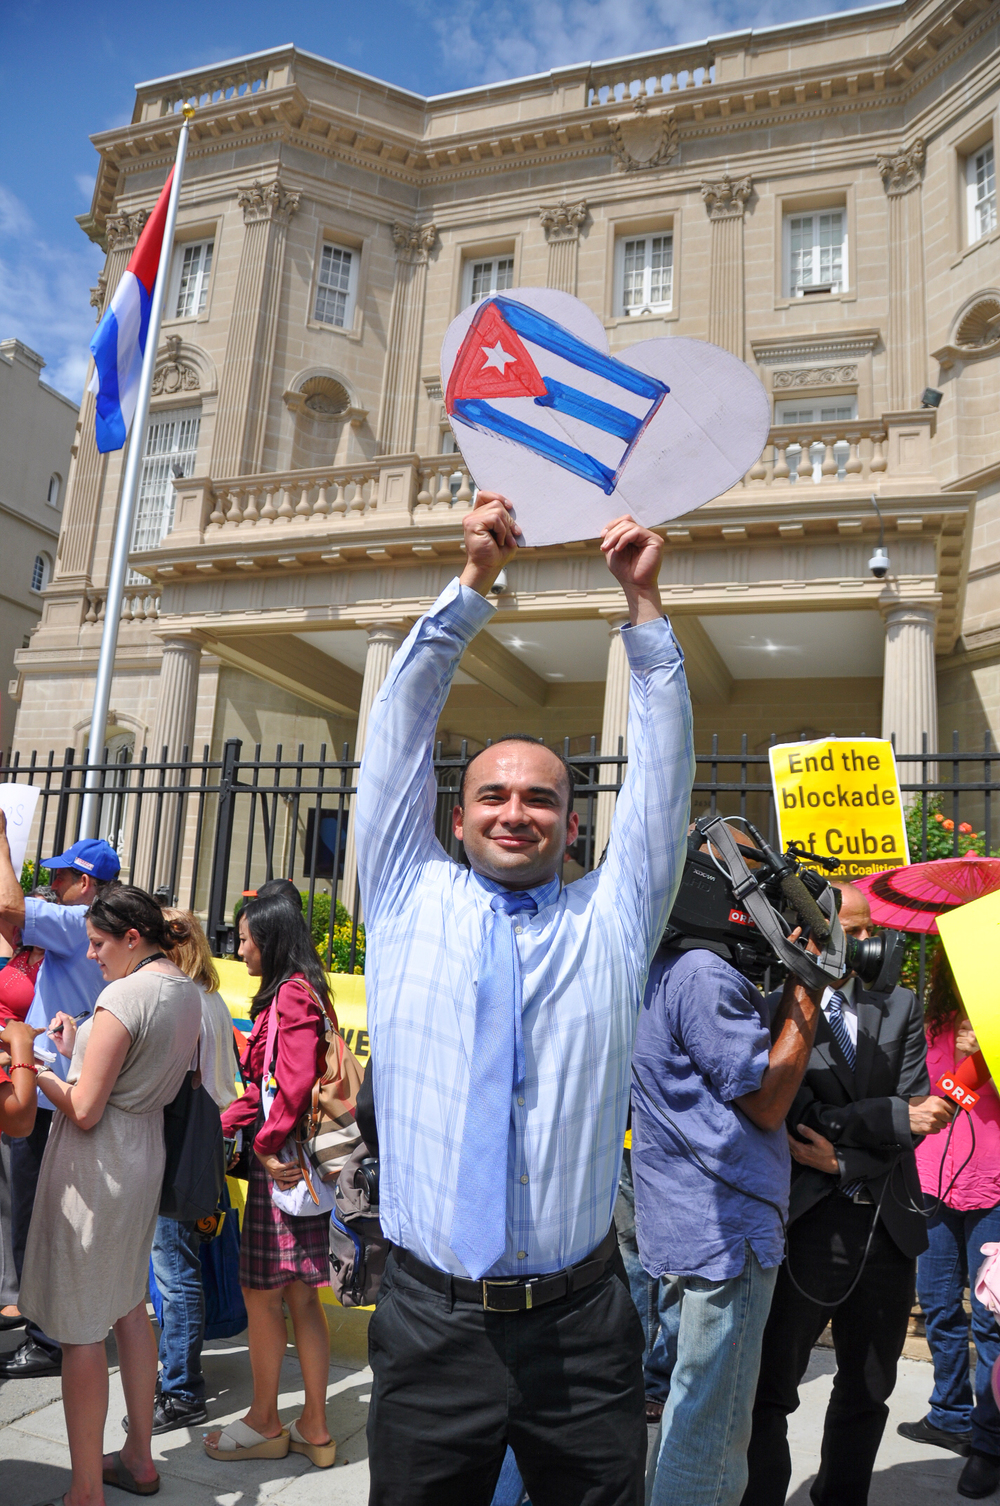 7-20 Cuban Embassy-July 20, 2015-050-13.jpg